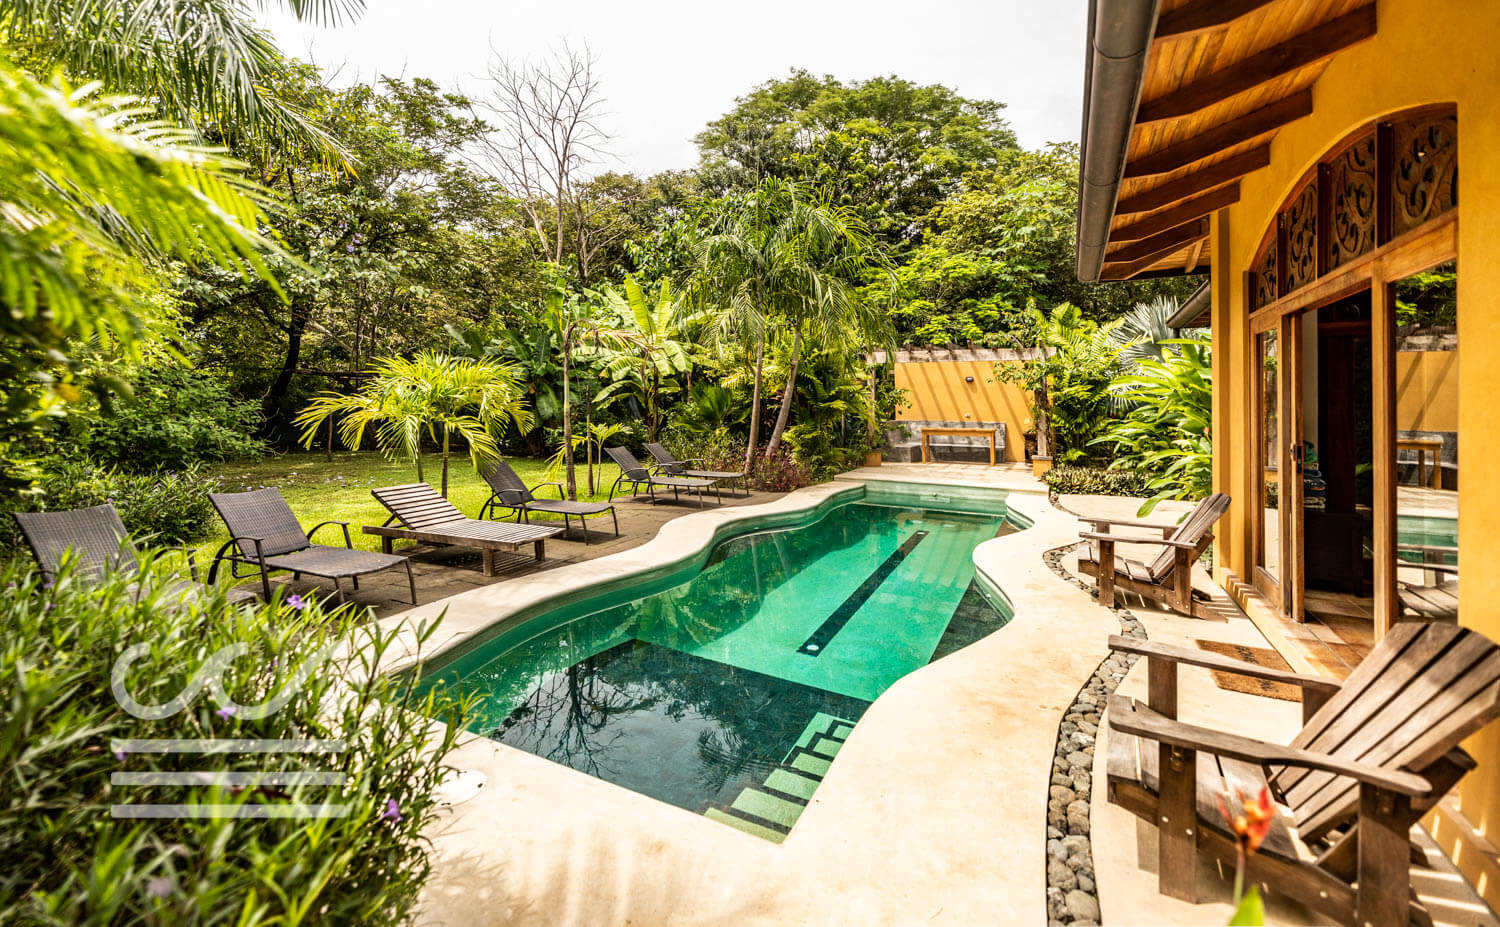 Endless-Summer-Wanderlust-Realty-Real-Estate-Rentals-Nosara-Costa-Rica-6.jpg